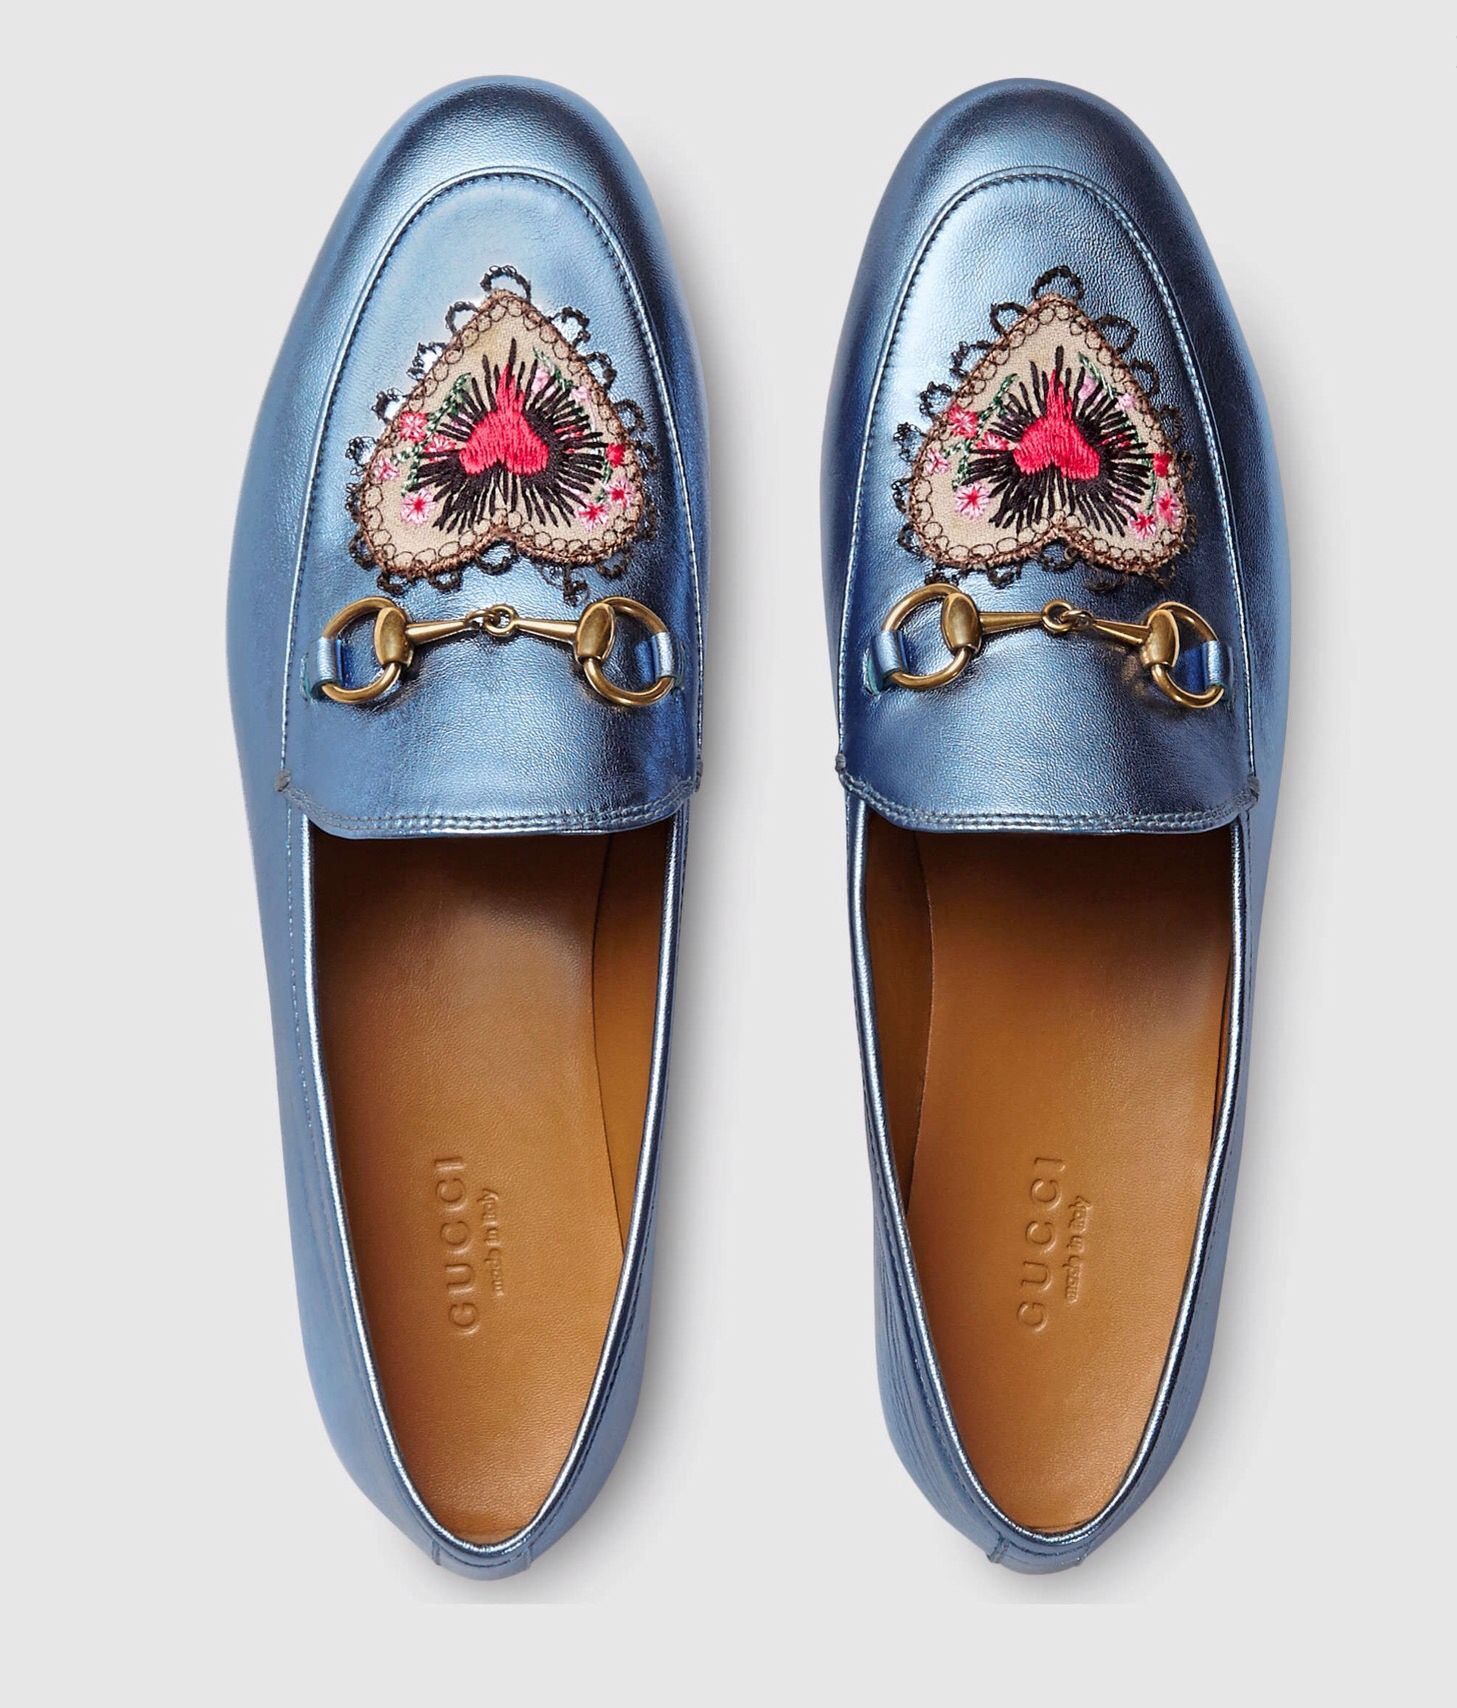 3f689d7eaa76 Something blue babe Metallic Loafers